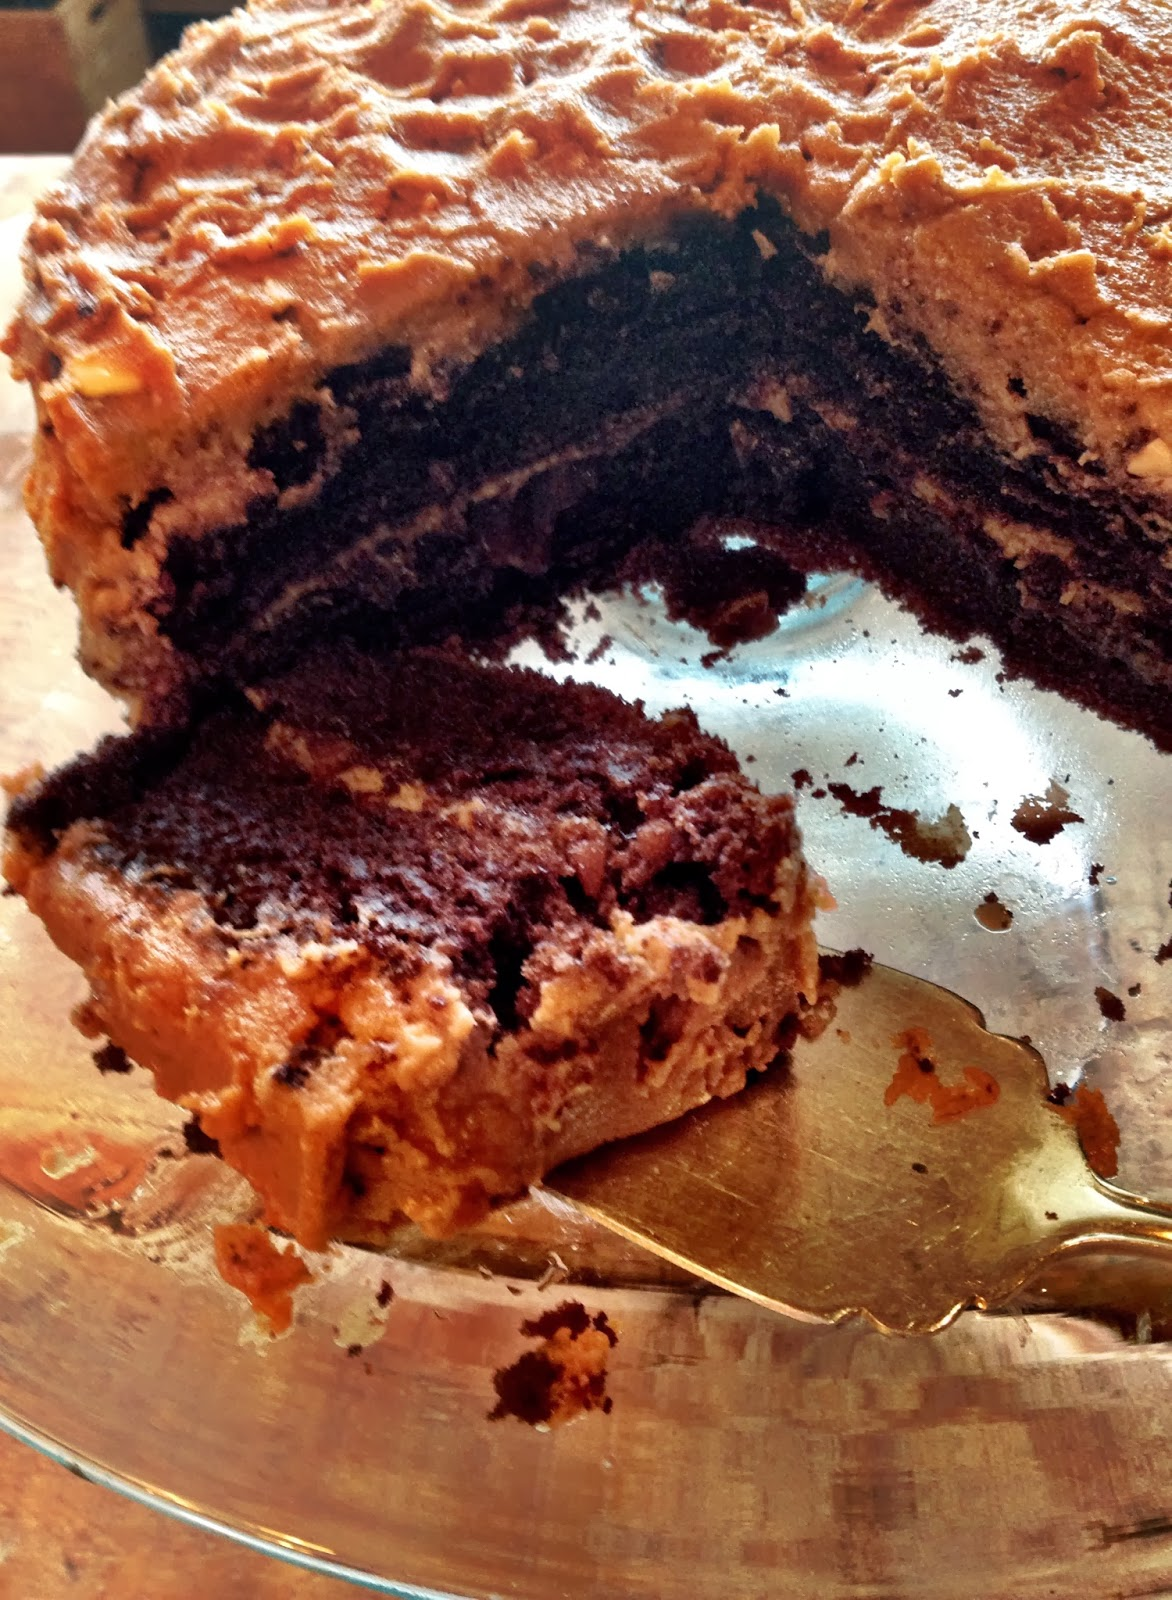 My Farm Life Diary: Peanut Butter and Jam Chocolate Cake